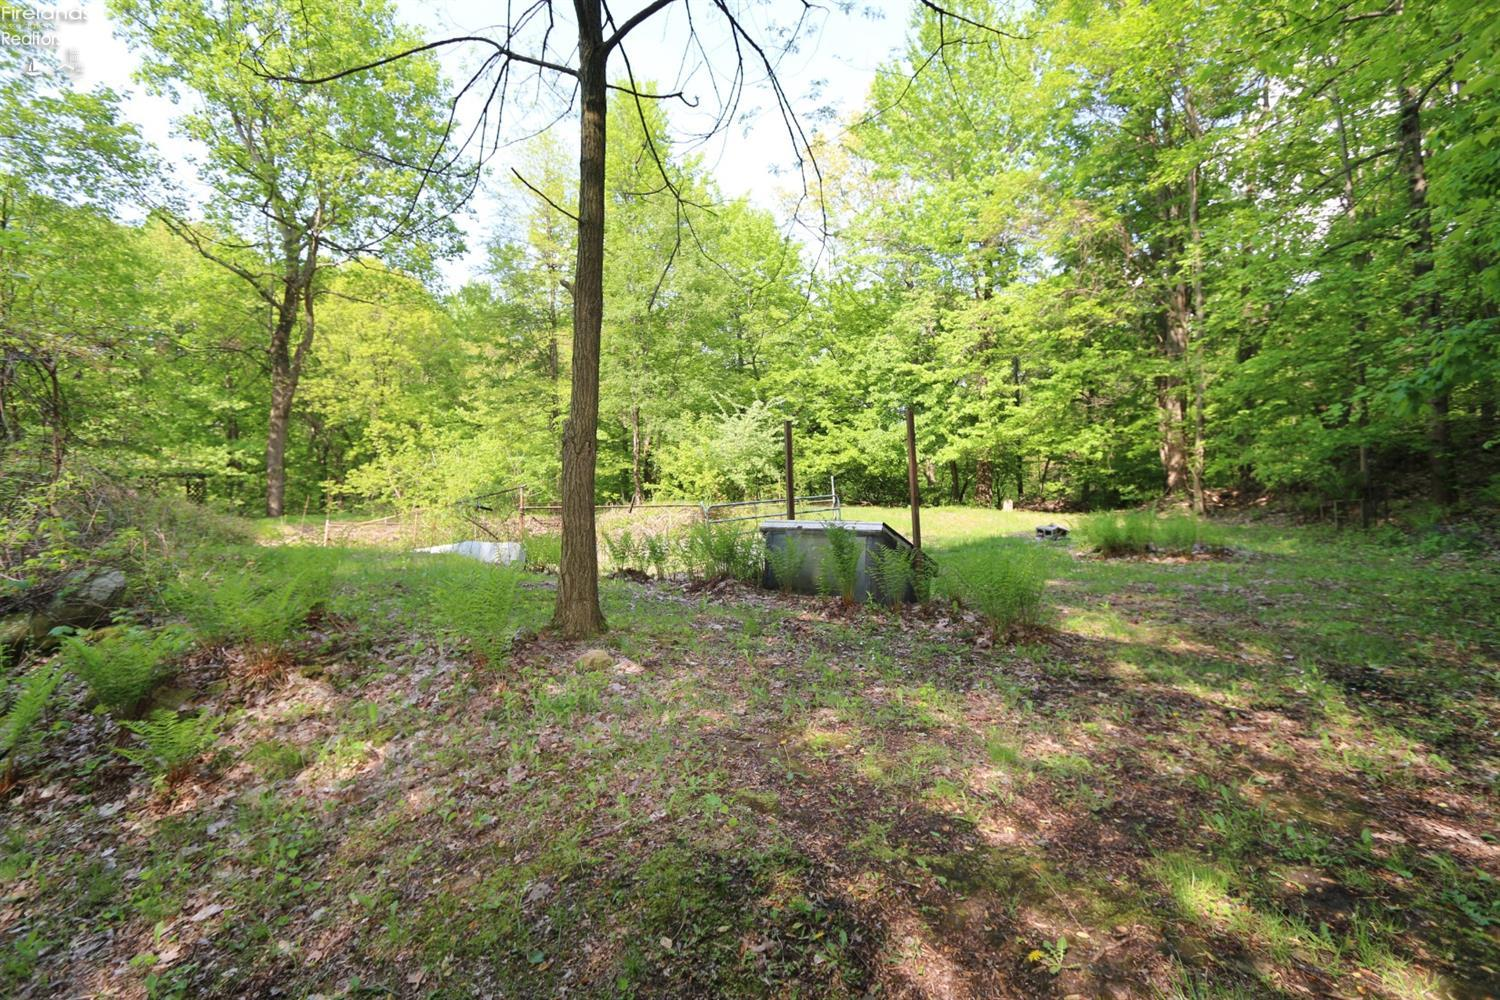 1915 NW CLAUS ROAD, VERMILION, OH 44089  Photo 7